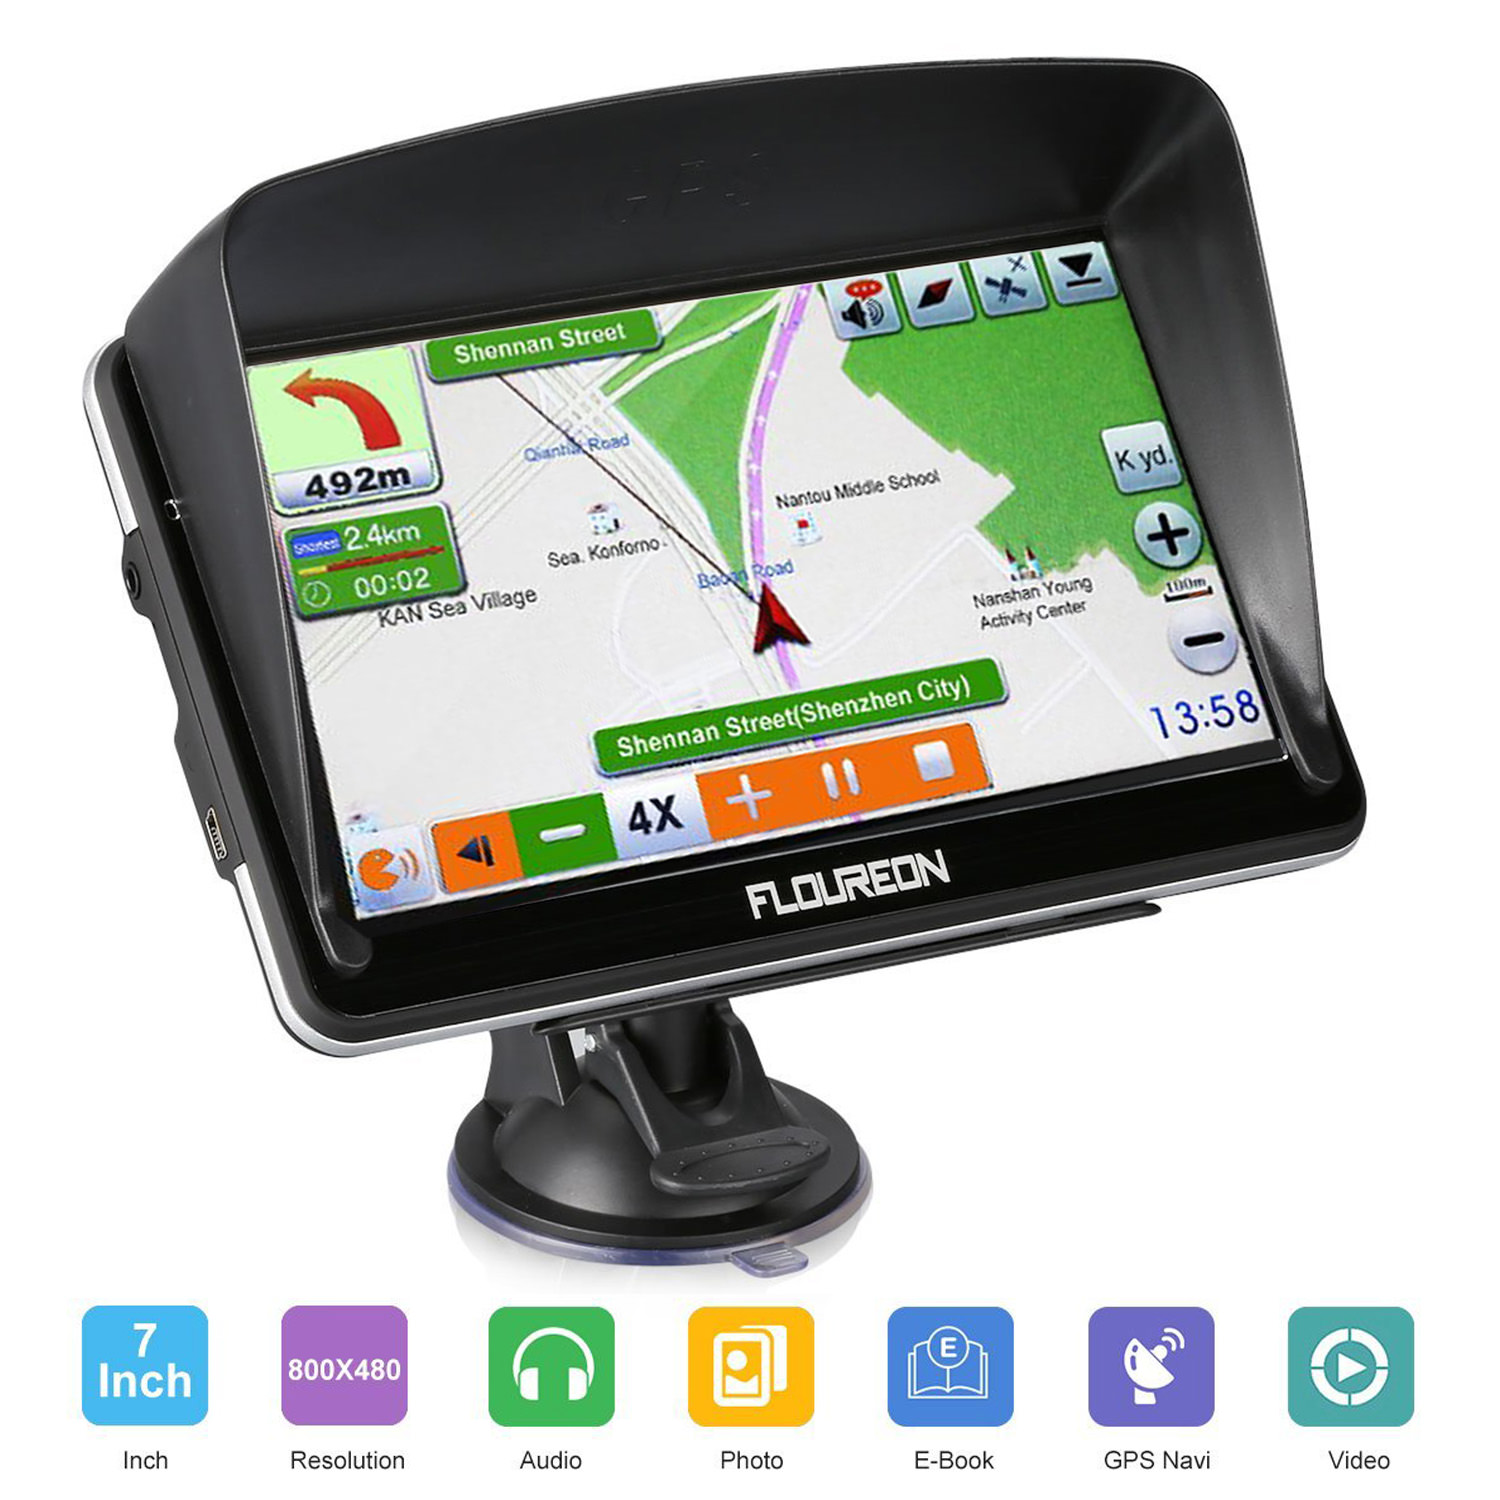 Floureon Portable GPS Navigator Handheld GPS Units Sets 8GB US Map w/ Large 7inch Touchscreen